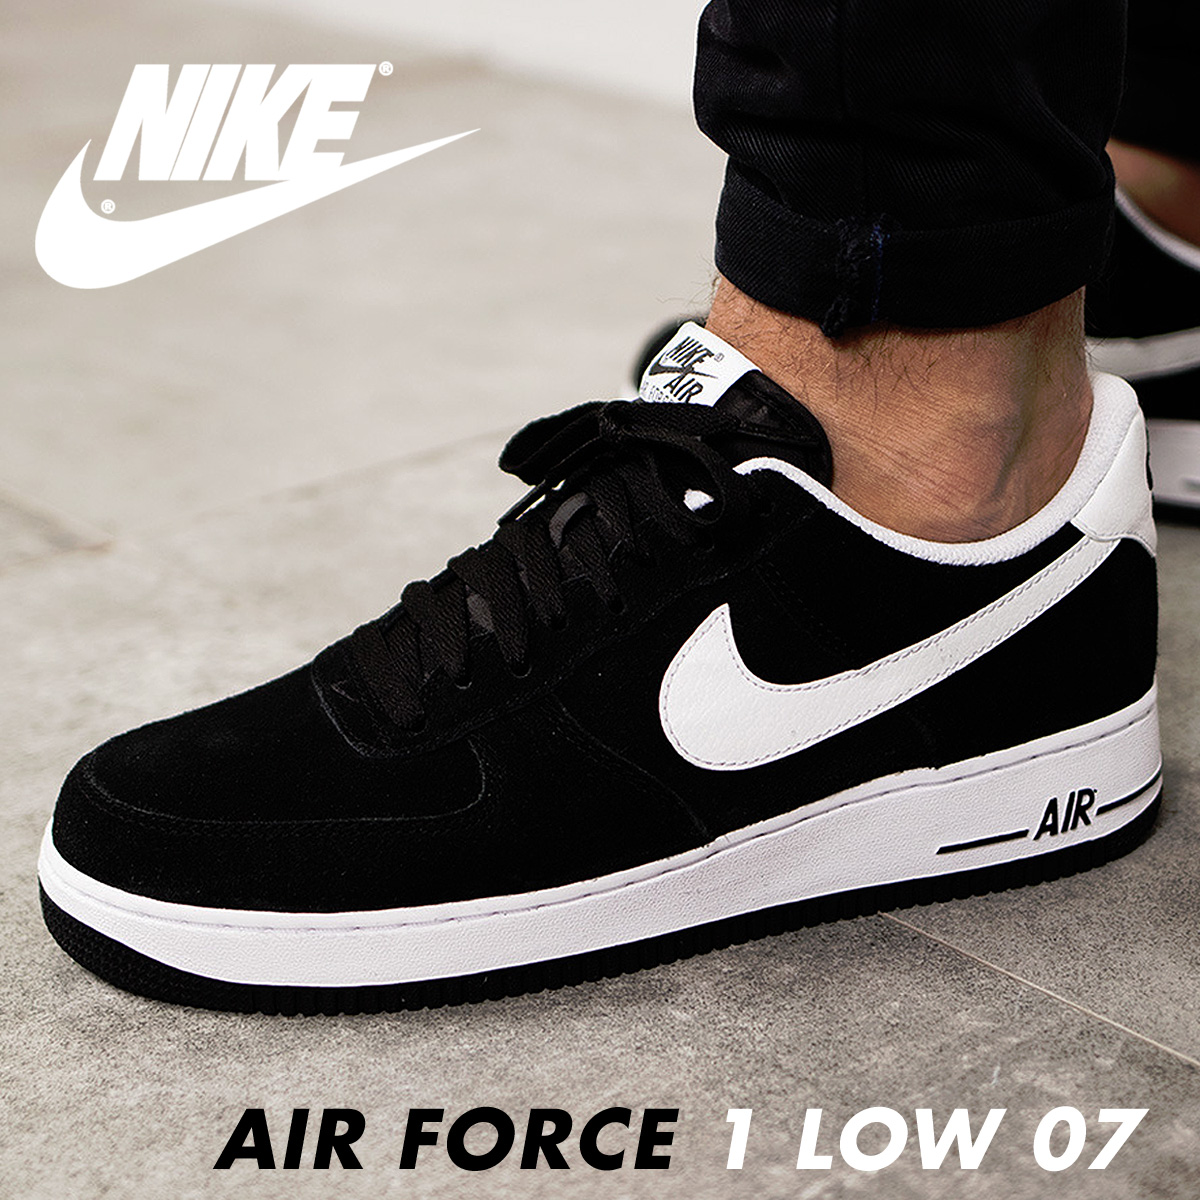 newest d6fe7 ea830 Nike NIKE air force 1 sneakers AIR FORCE 1 LOW 07 315,122-068 men s shoes  black  8 28 Shinnyu load